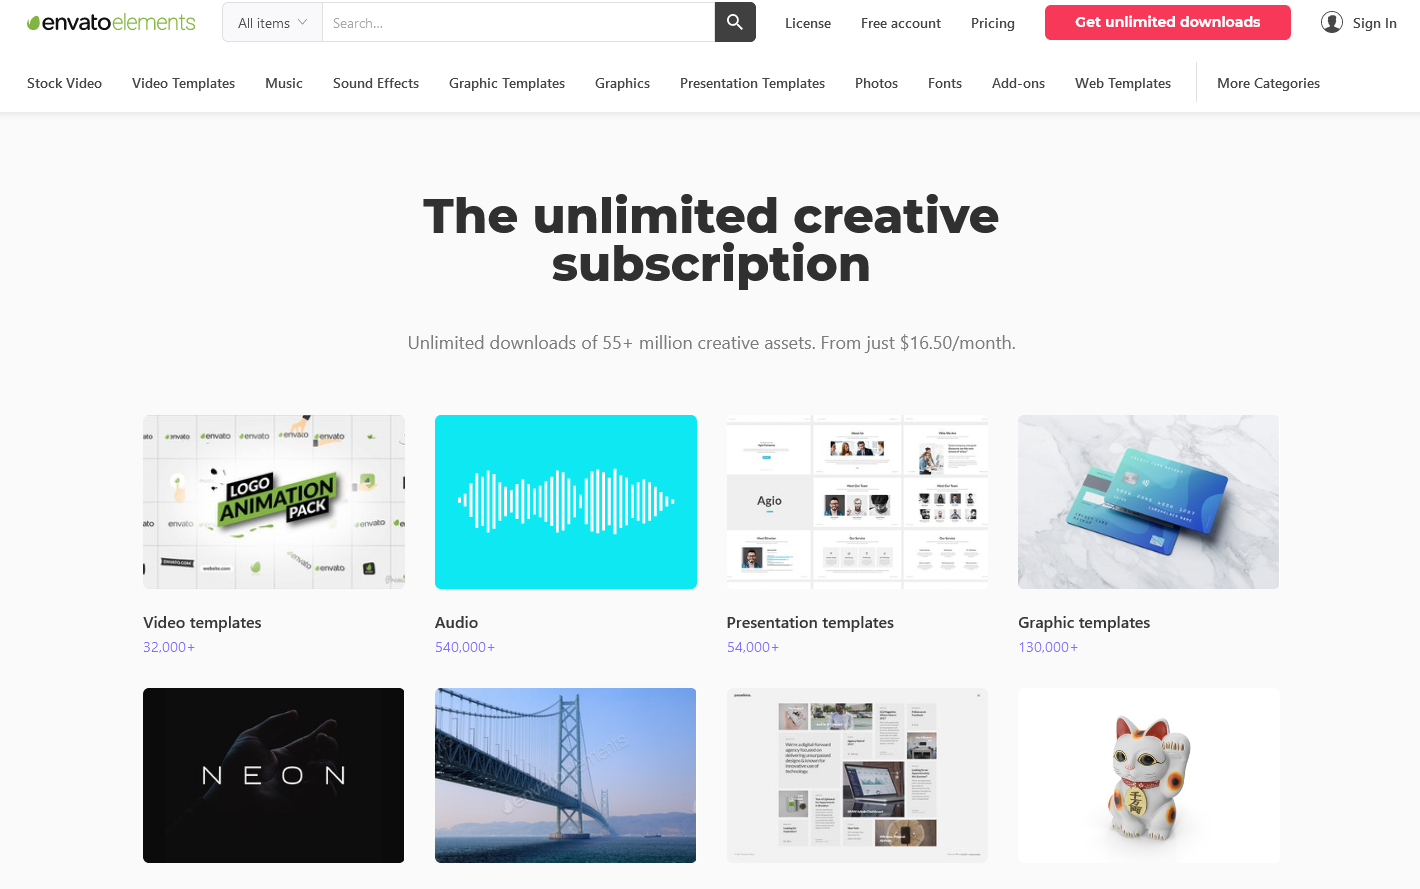 Envato Elements - Unlimited downloads of 55+ million creative assets. From just $16.50/month.